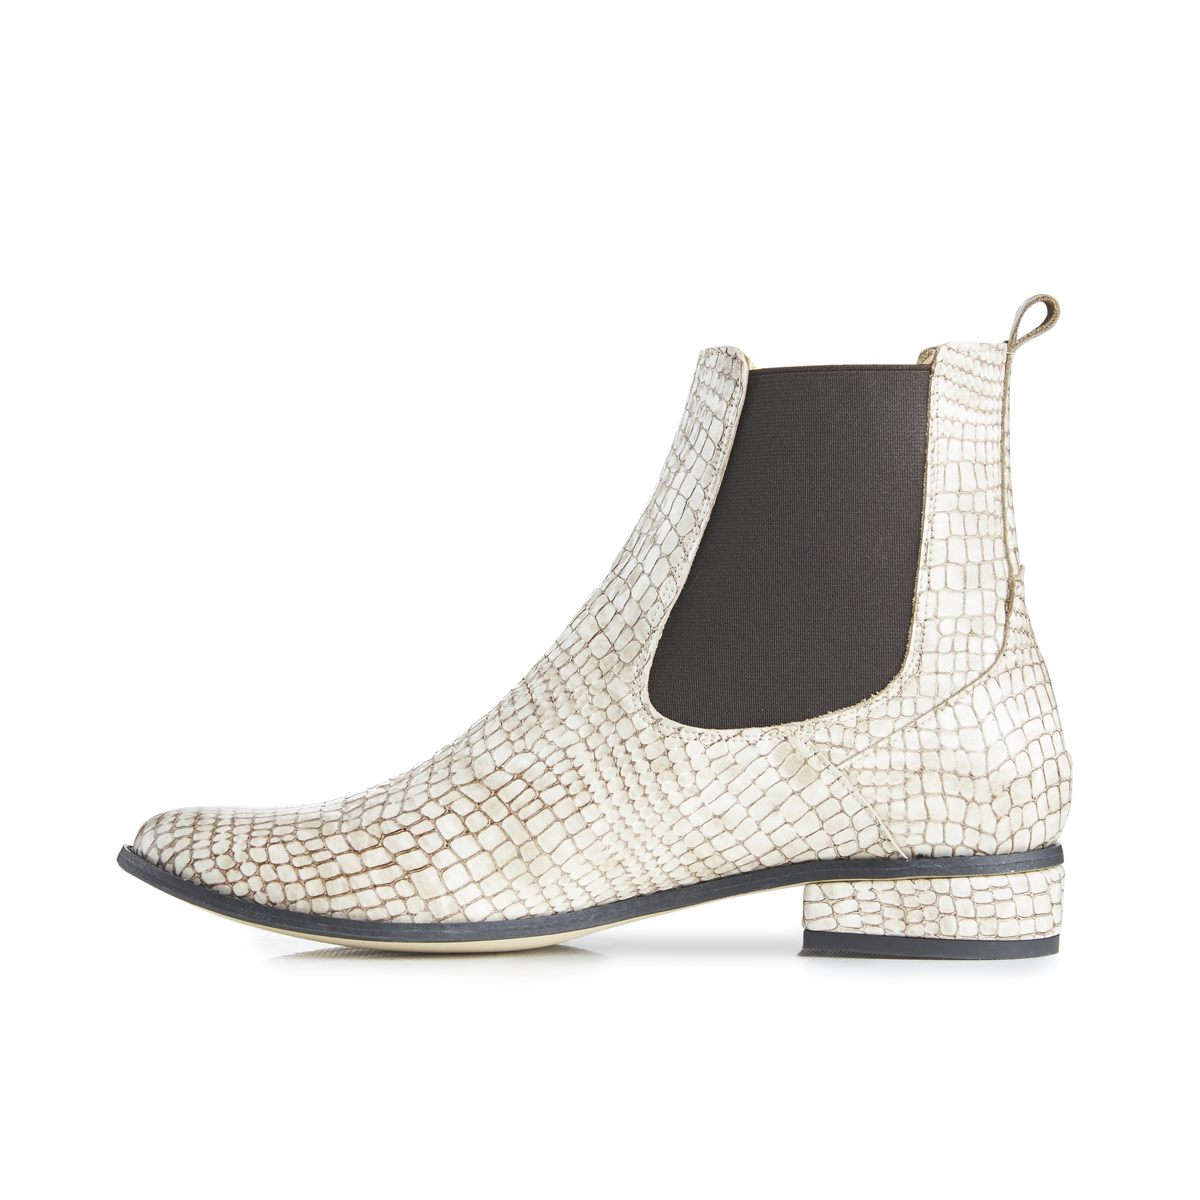 Casey Ankle Boots In Moc Croc - Beige